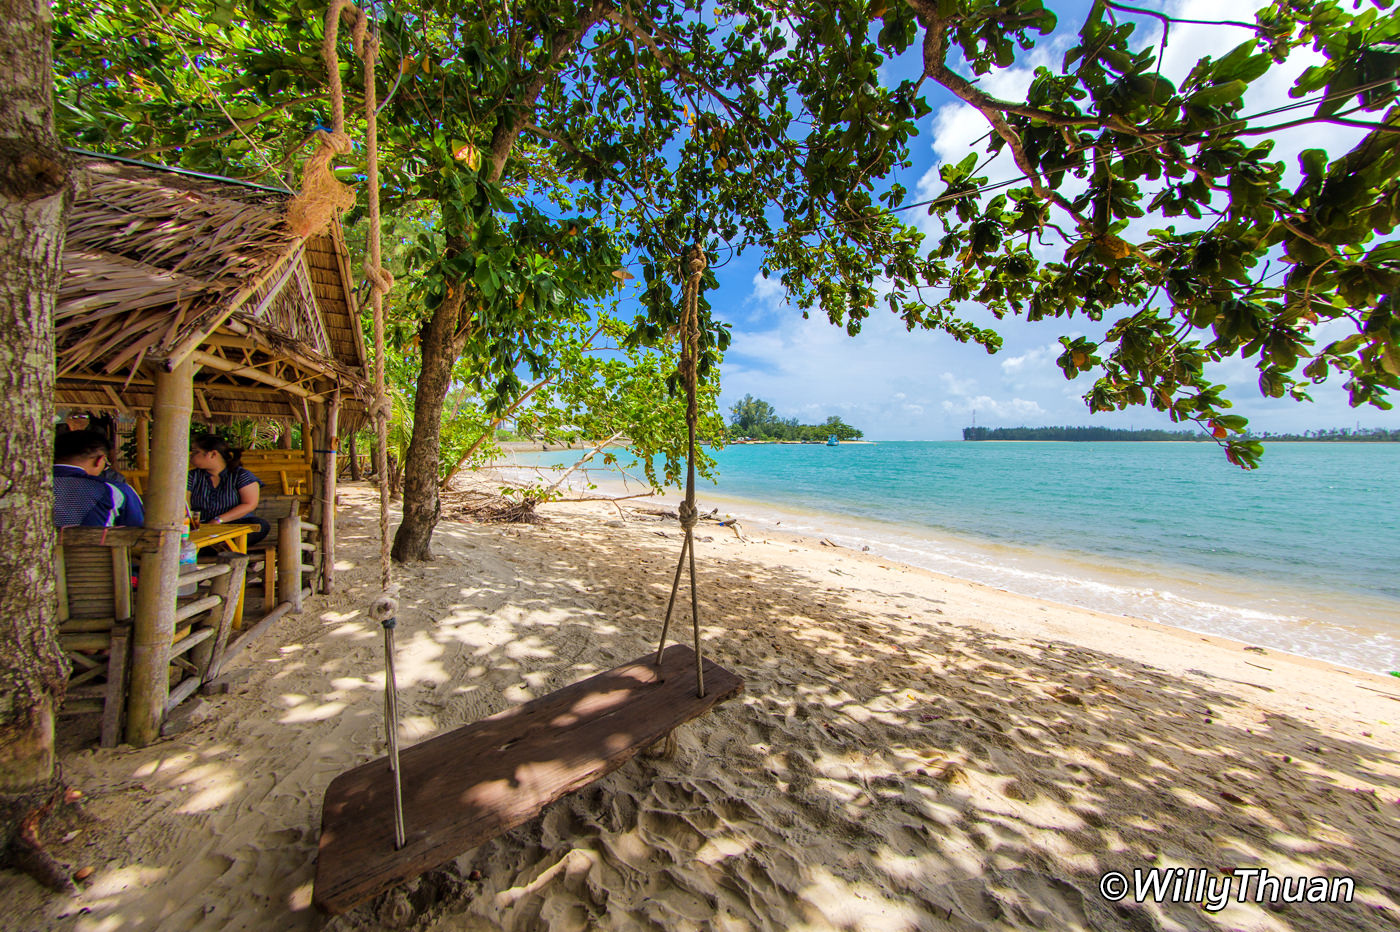 Where to eat on the beach in Phuket